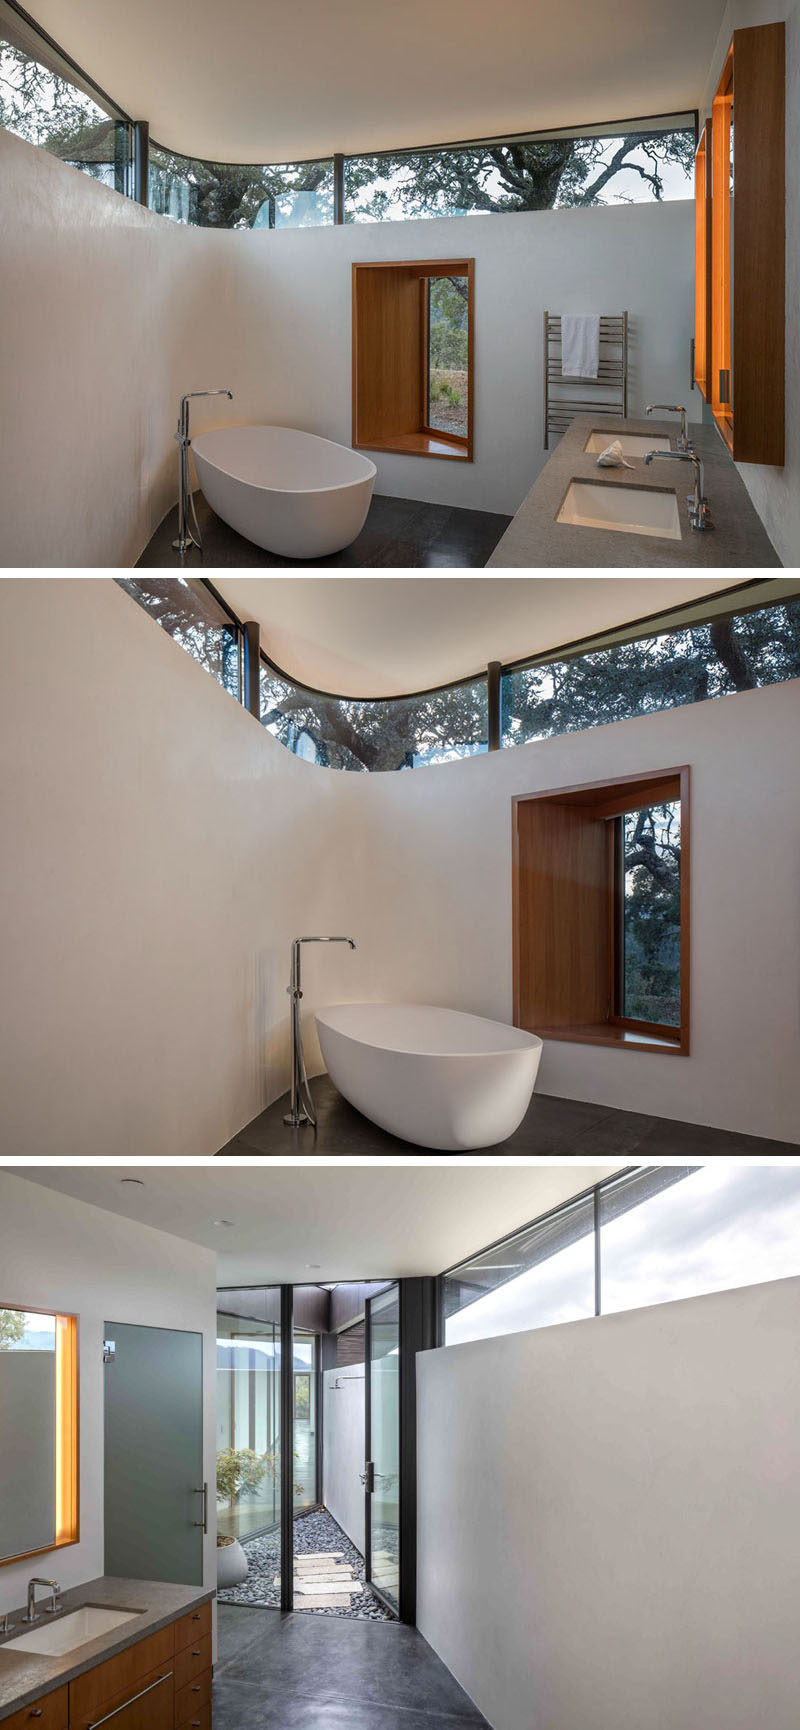 In this modern bathroom, clerestory windows follow the curve of the wall and a wood framed window provides views of the surrounding landscape. A private outdoor shower can be accessed through a glass door. #OutdoorShower #ModernBathroom